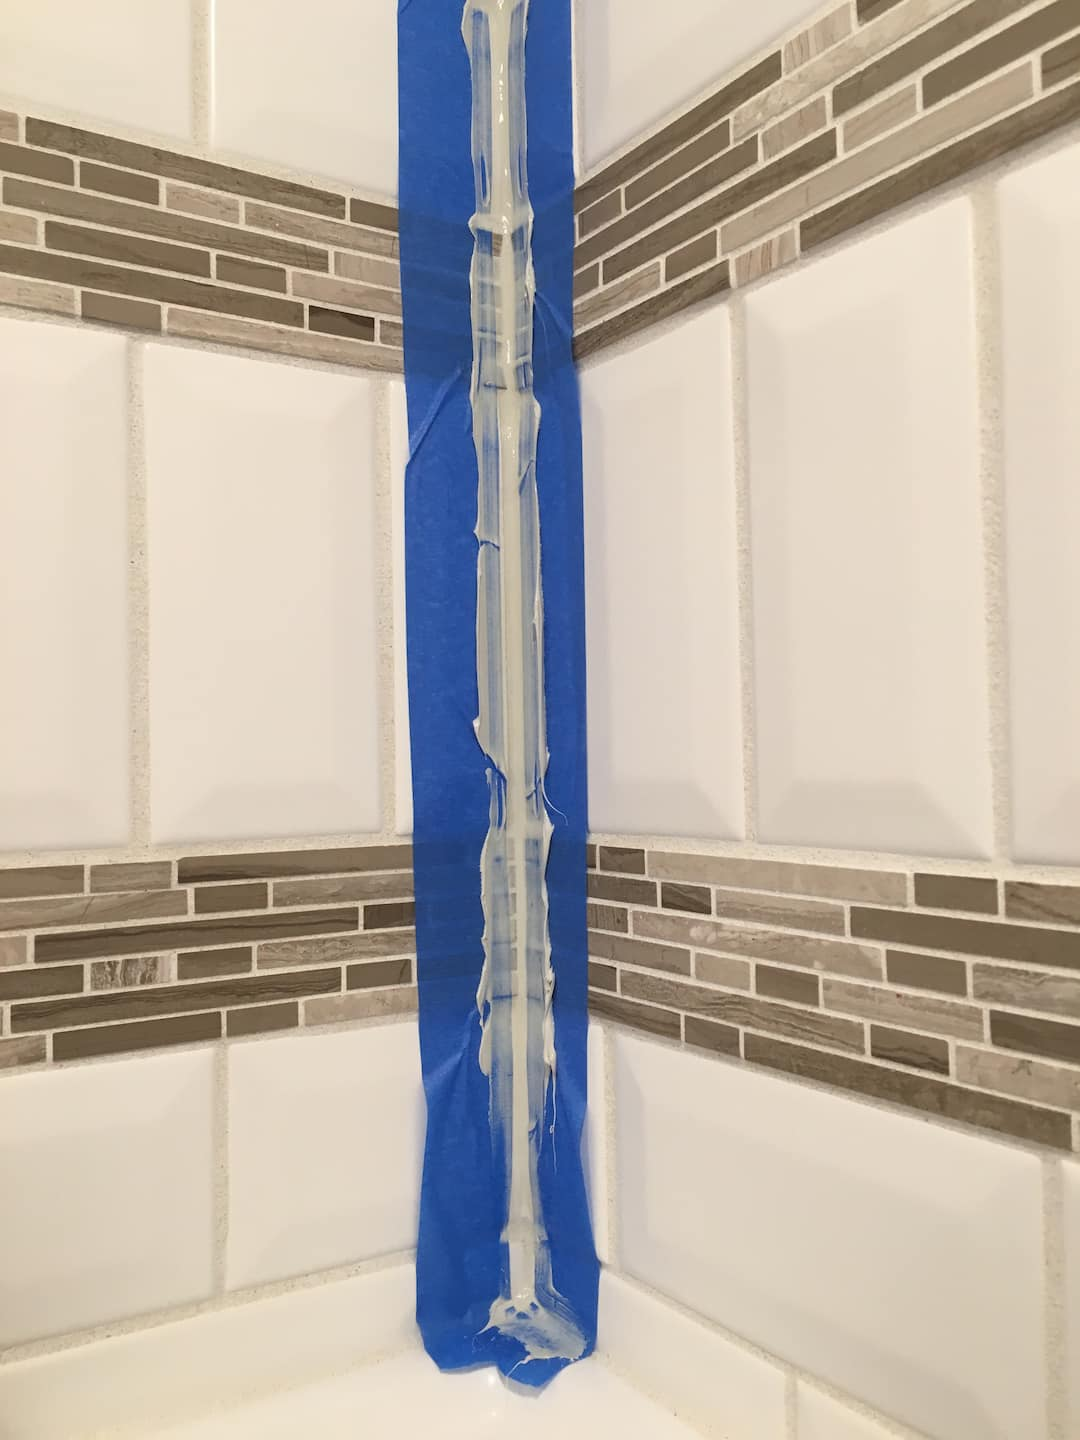 CaulkcracksJPG Angies List - 100 silicone caulk for shower